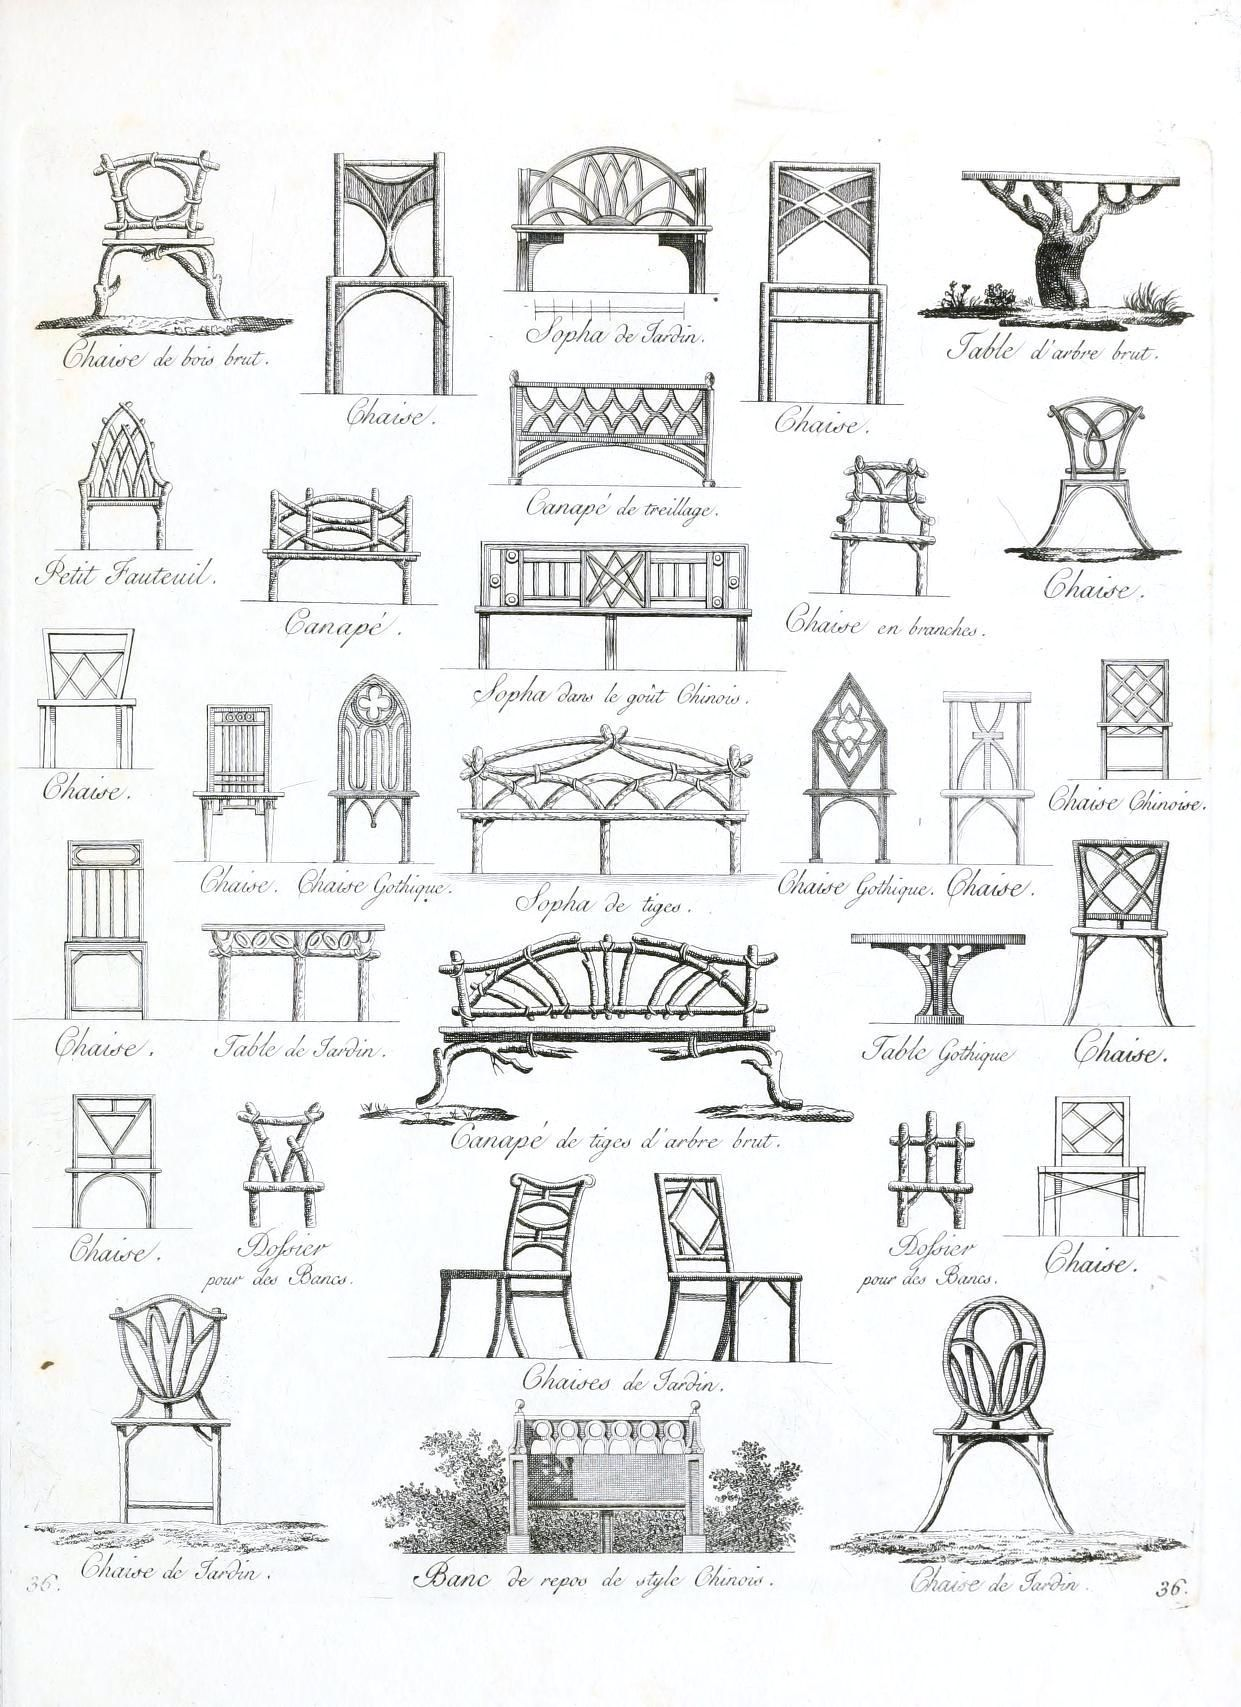 Garden Furniture Vintage vintage european garden furniture design printable from vintage